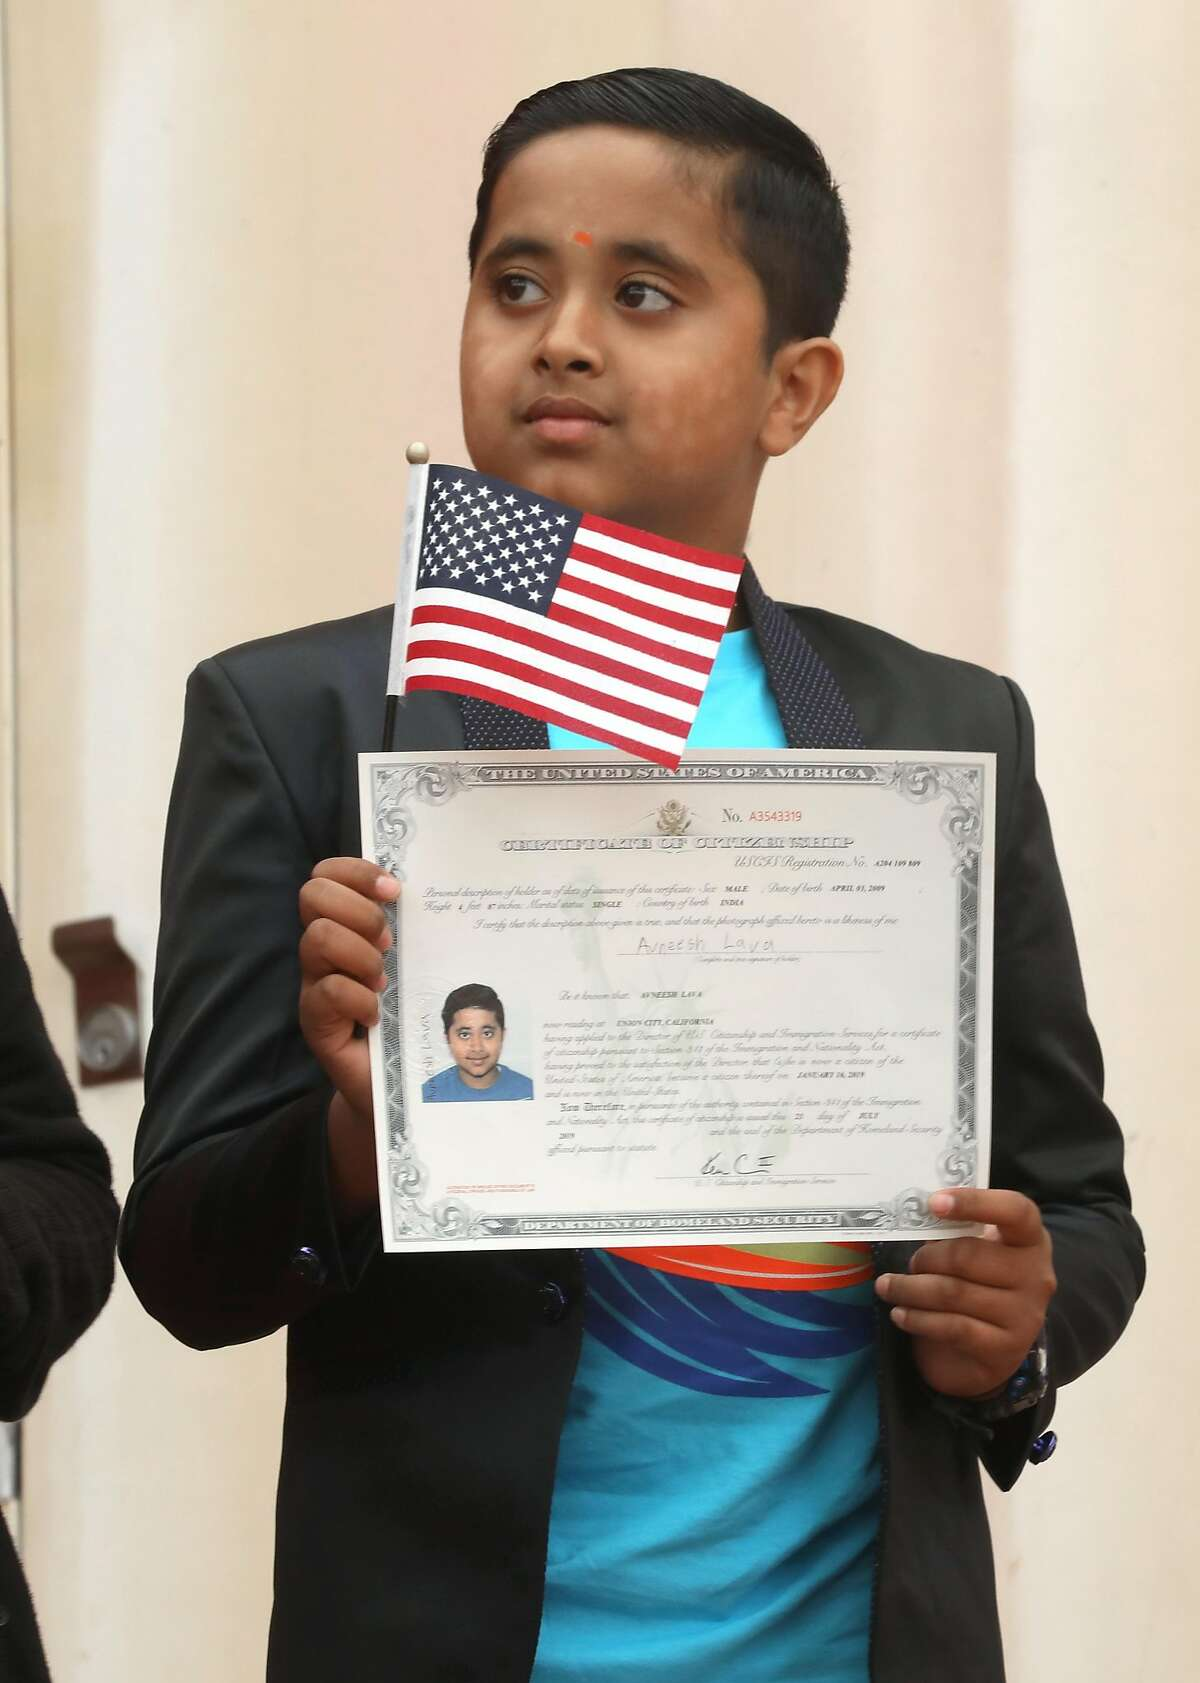 Avneesh Lava, 10years old, from Union City was one of twenty-six children ages 2-13 (from 13 countries) receiving certificates of citizenship at Children�s Fairyland from the U.S. Citizenship and Immigration Services on Monday, July 29, 2019 in Oakland, Calif.